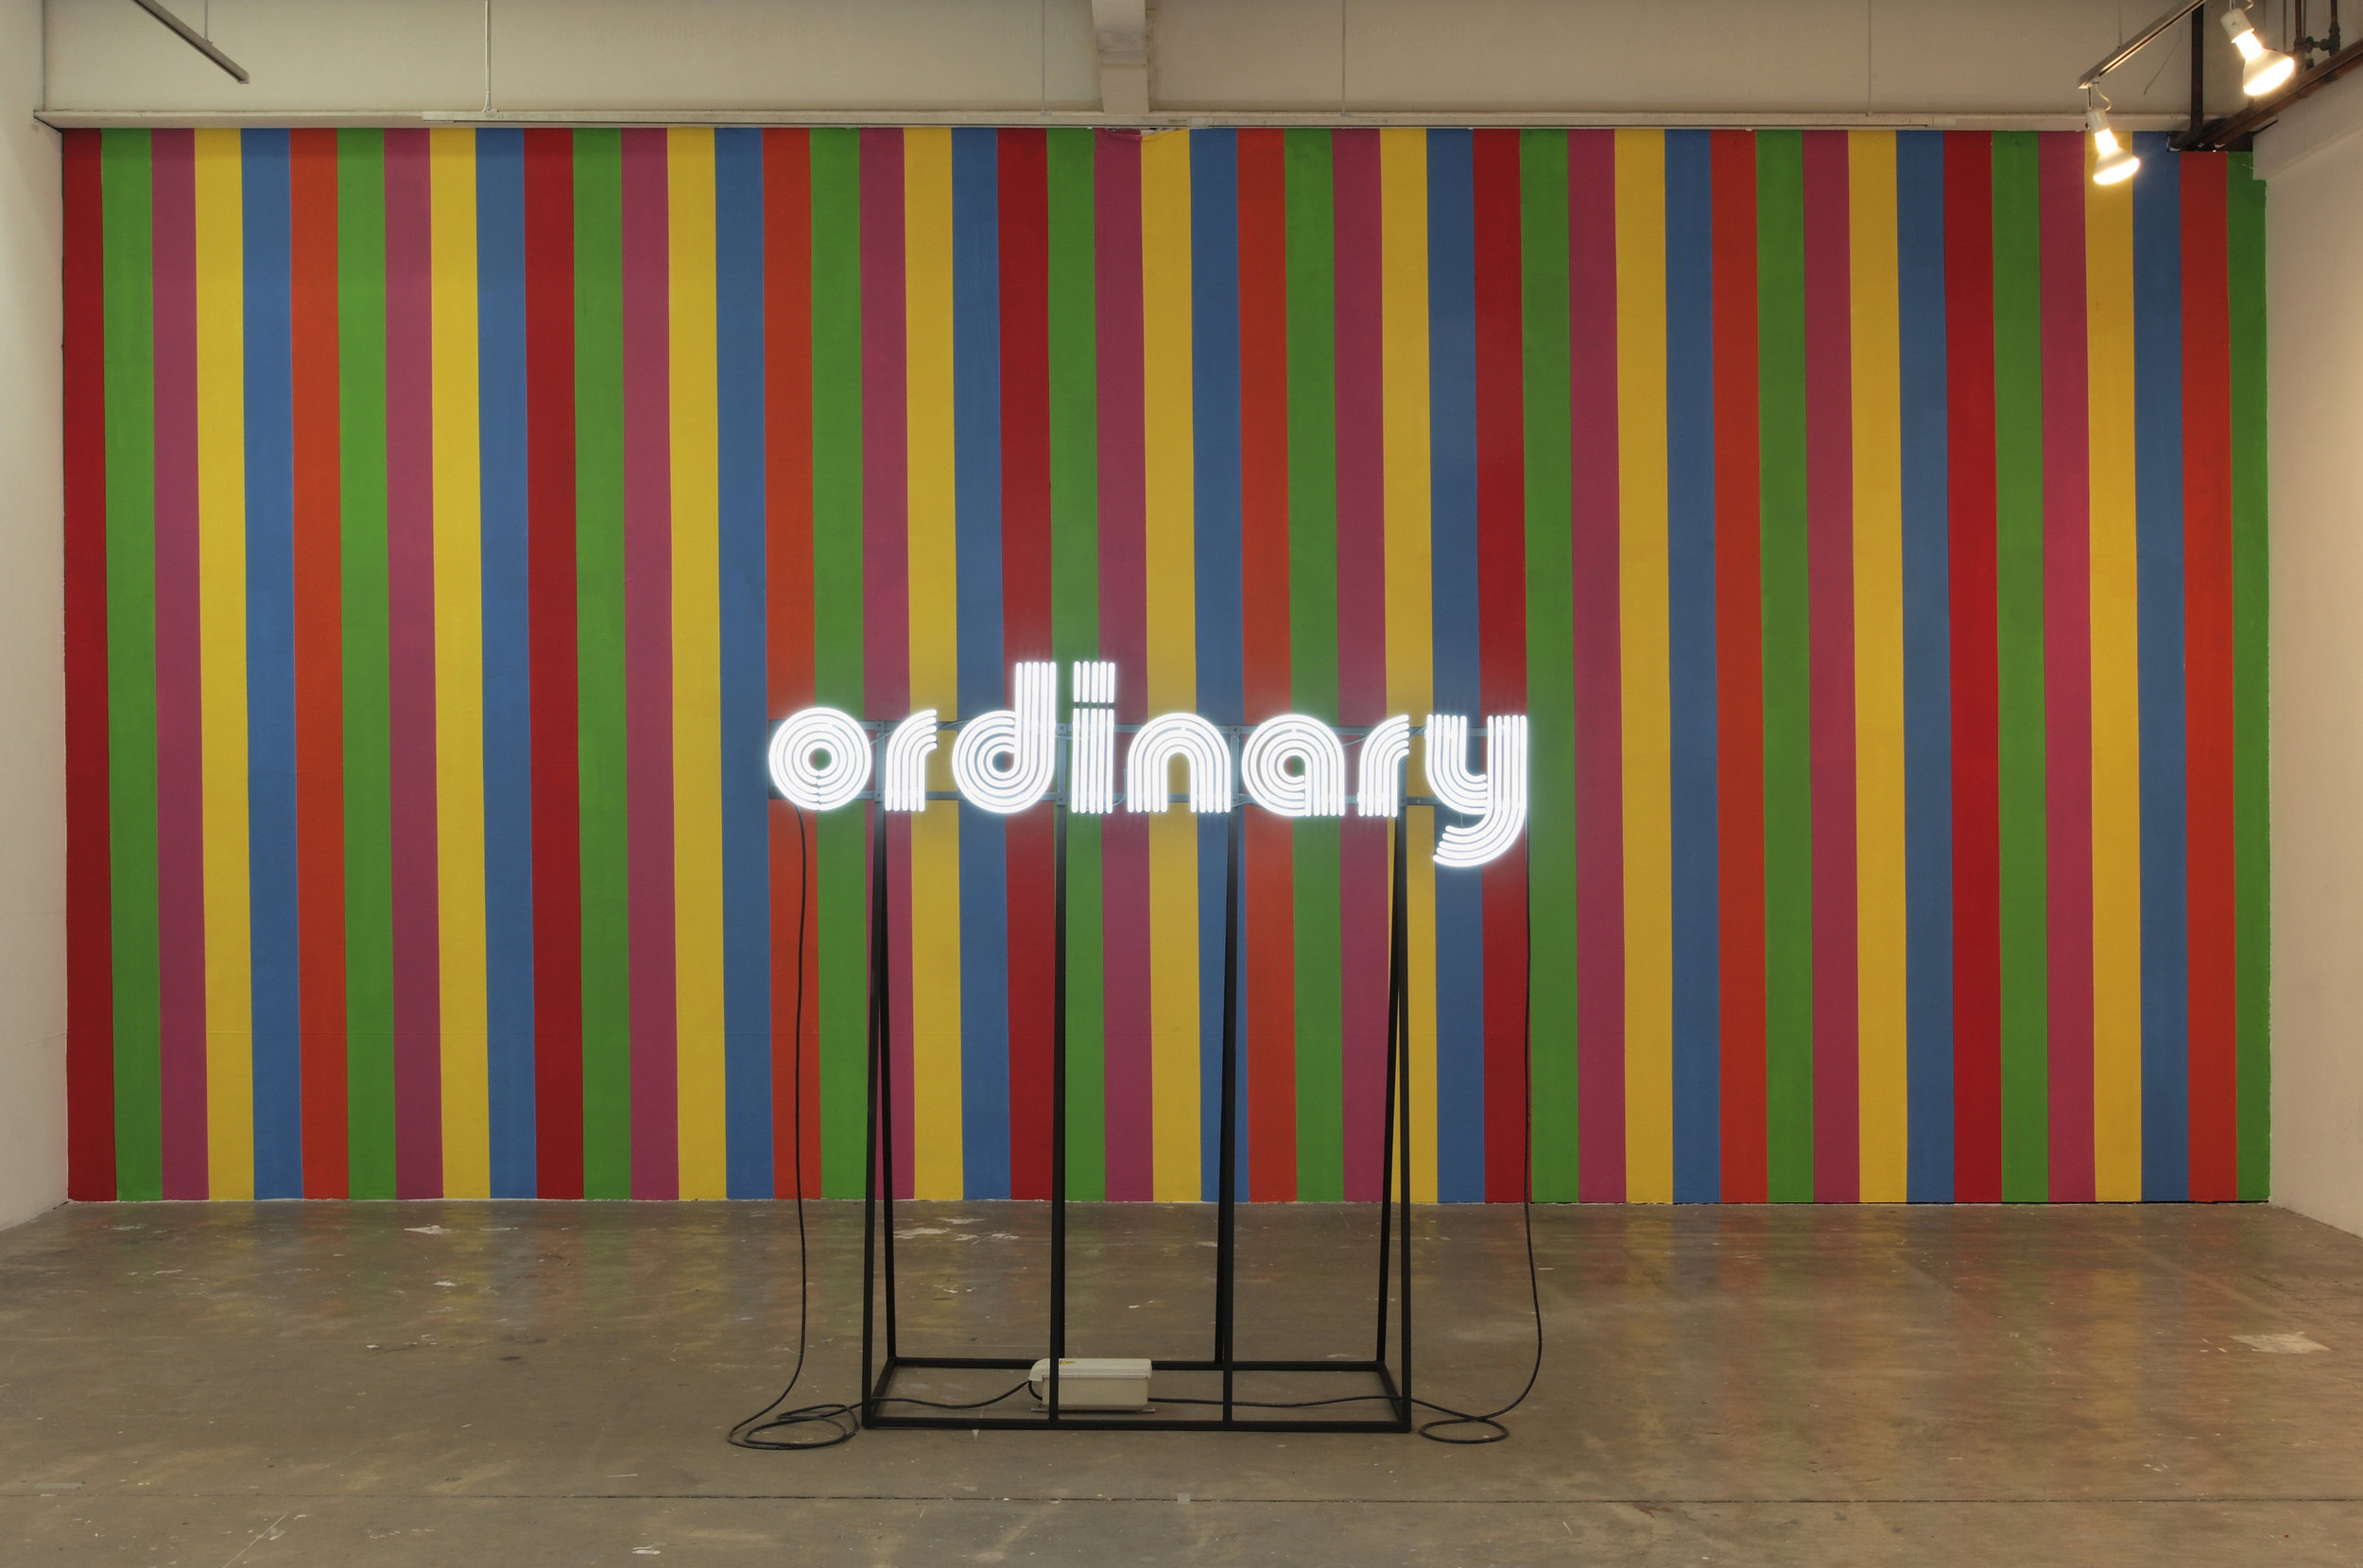 Kristin McIver  Lifeless lll , 2009 neon and steel, synthetic polymer paint (neon stand and wall) 67 x 68 x 28 in (170.2 x 172.7 x 71.1 cm)